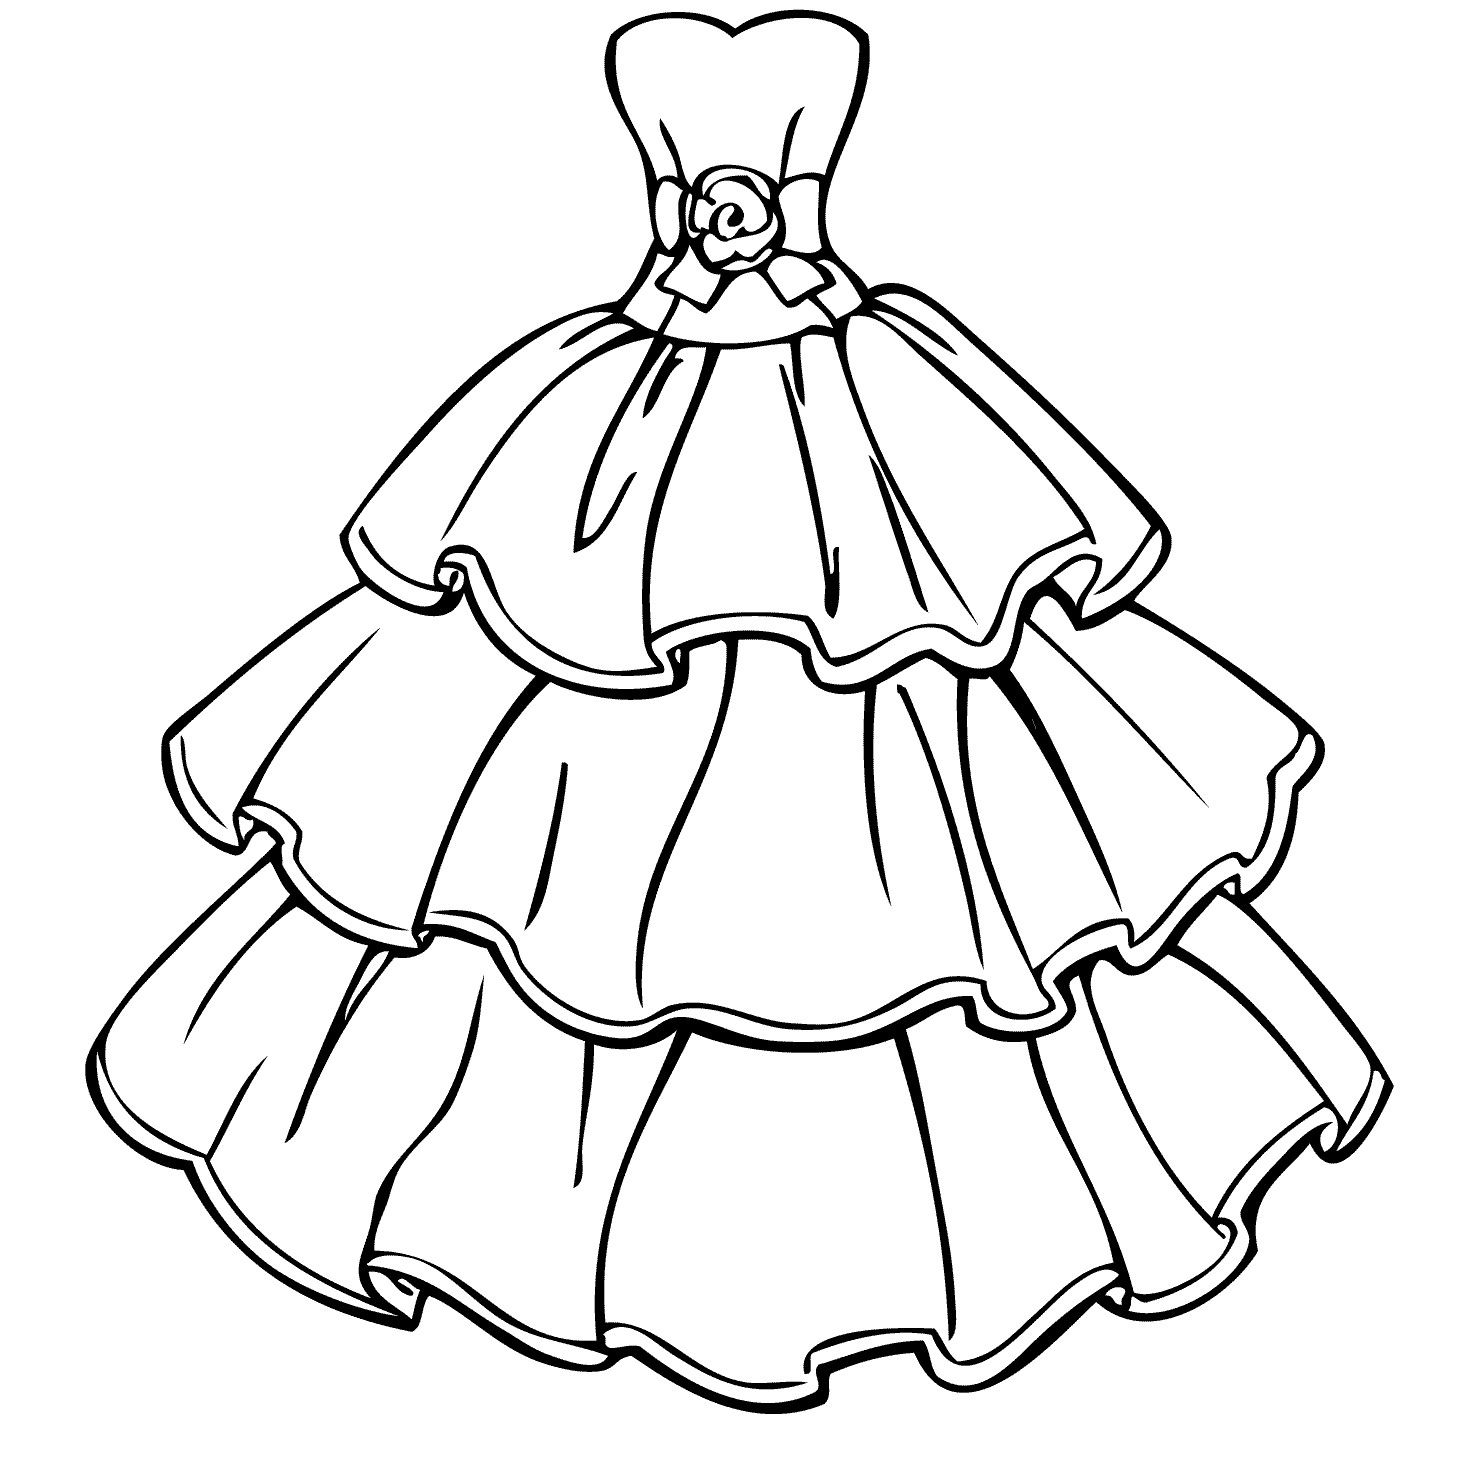 Wedding Dress Coloring Pages Coloring Home Princess Dress Coloring Pages Free Coloring Sheets